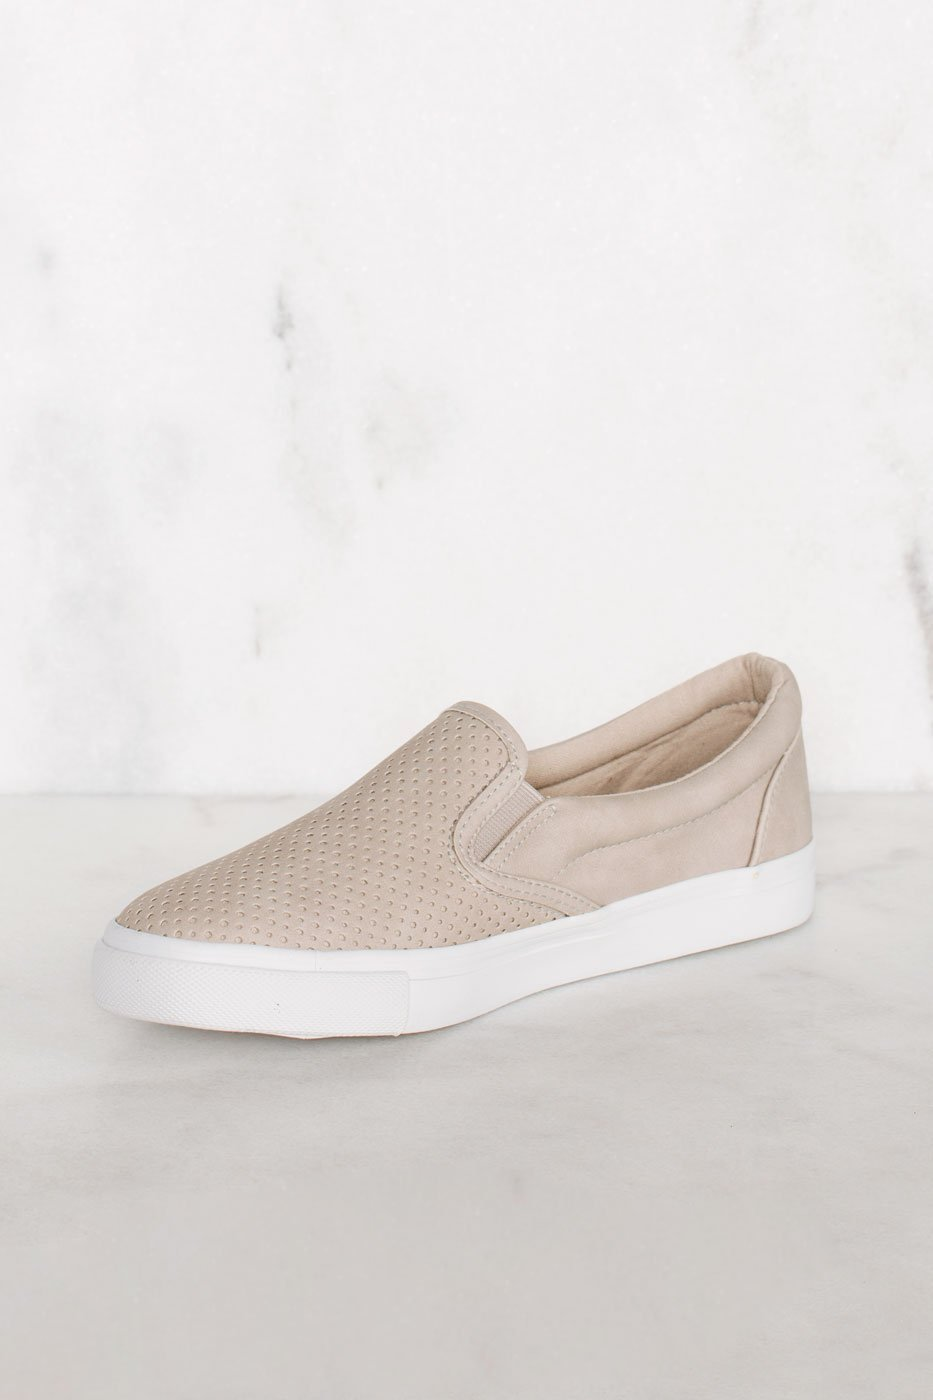 Shoes - Second Nature Slip-On Sneakers - Clay